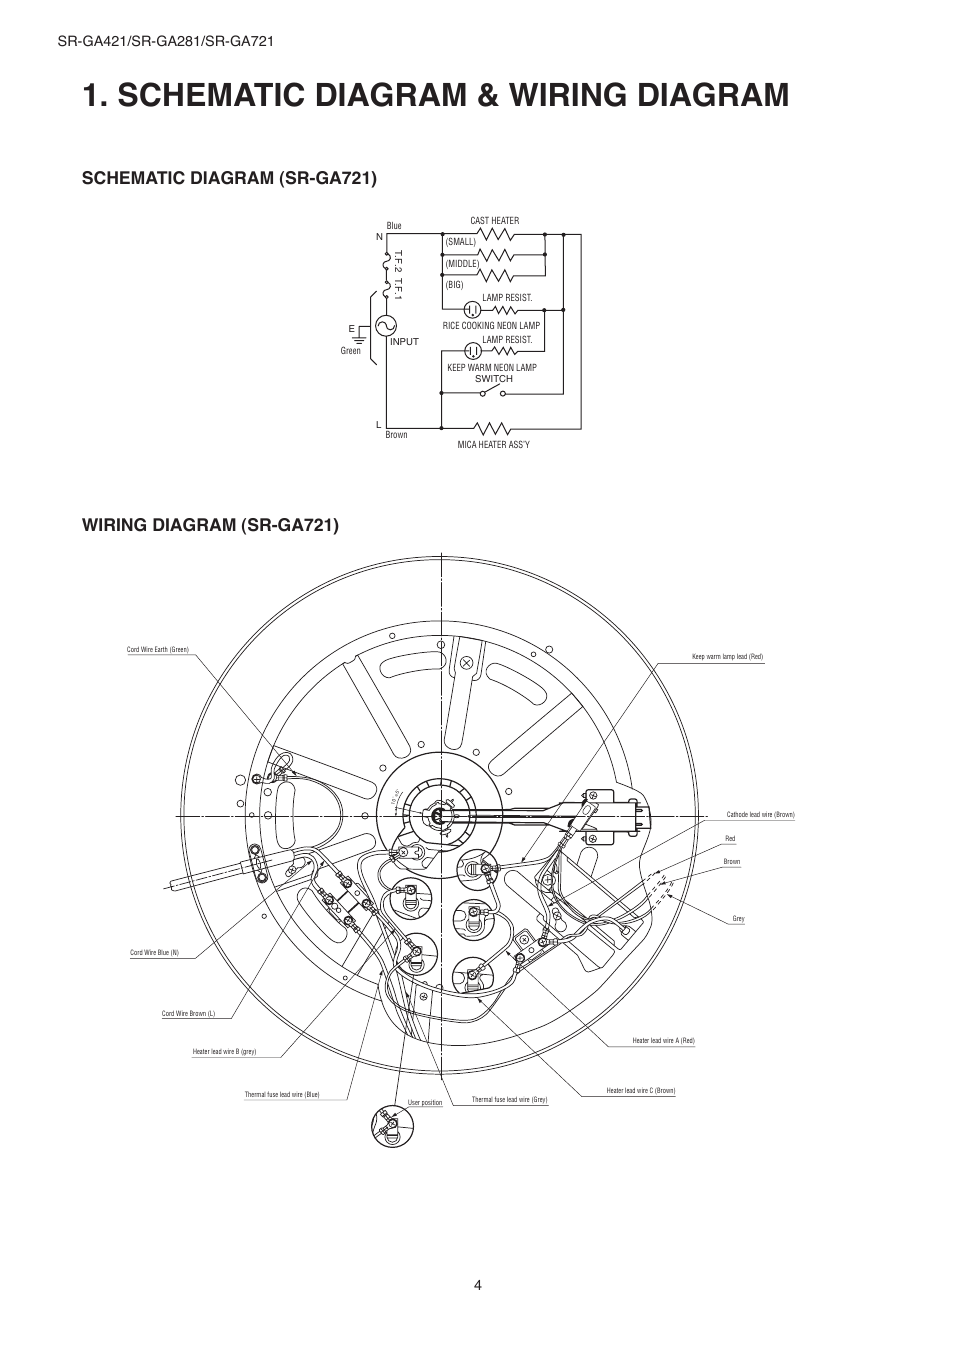 medium resolution of schematic diagram wiring diagram panasonic sr ga721 user manual page 4 18